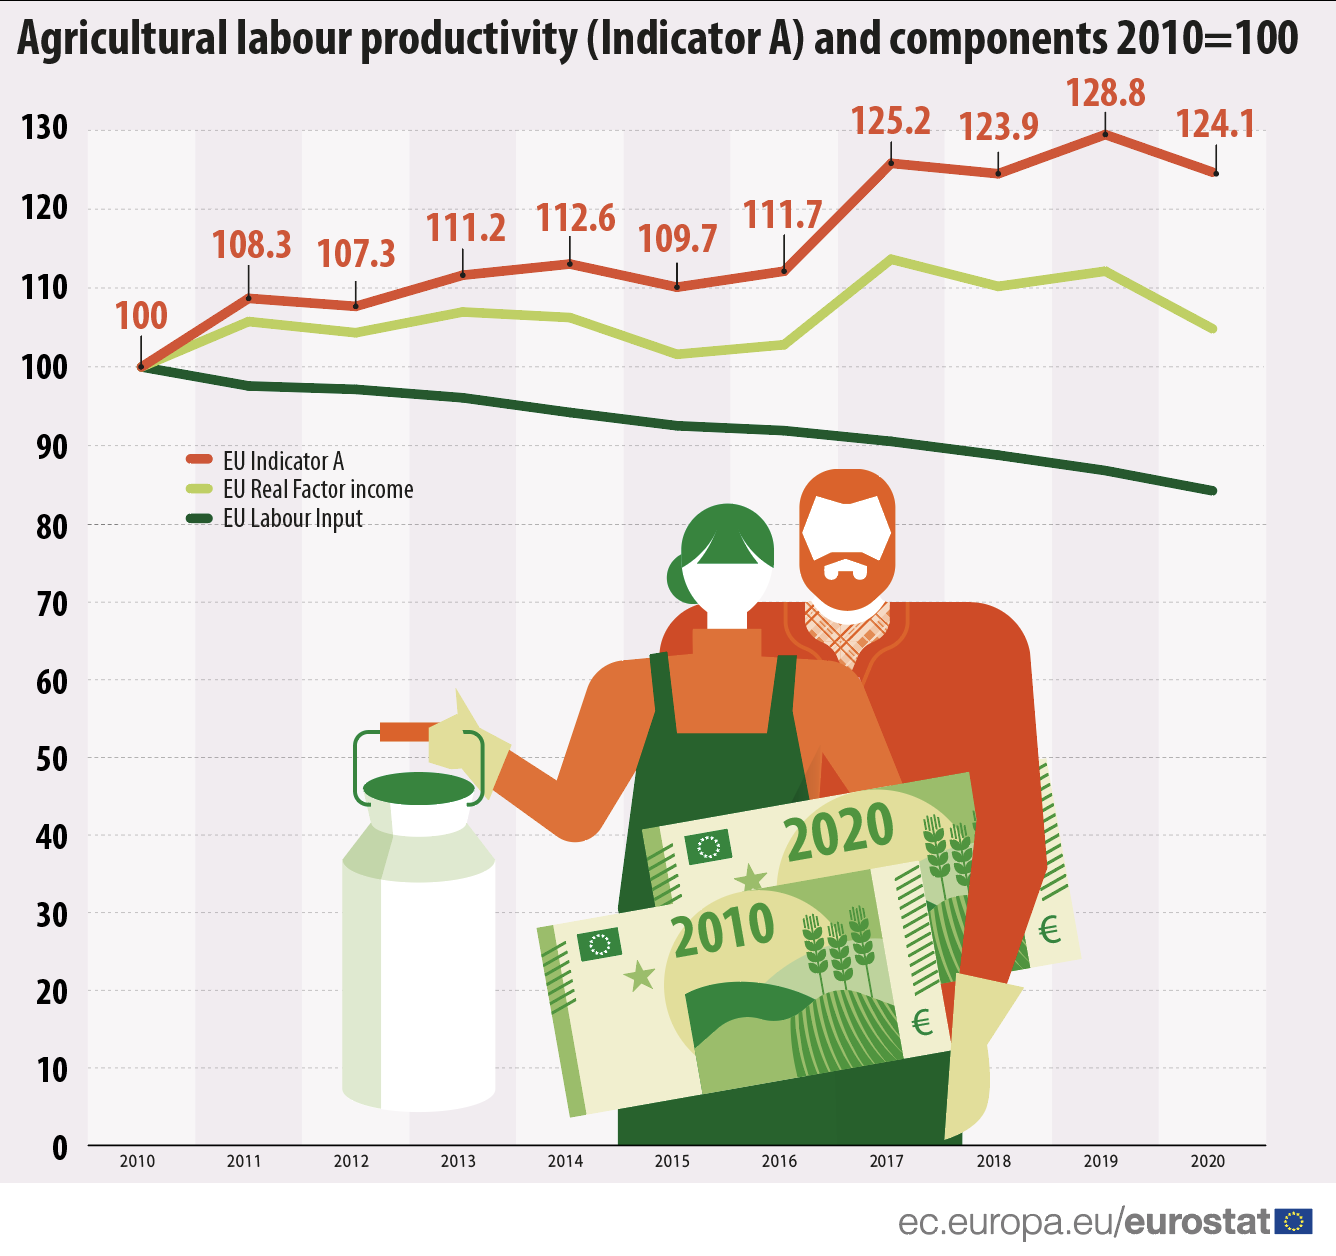 Agricultural labour productivity (Indicator A) and components 2010=100